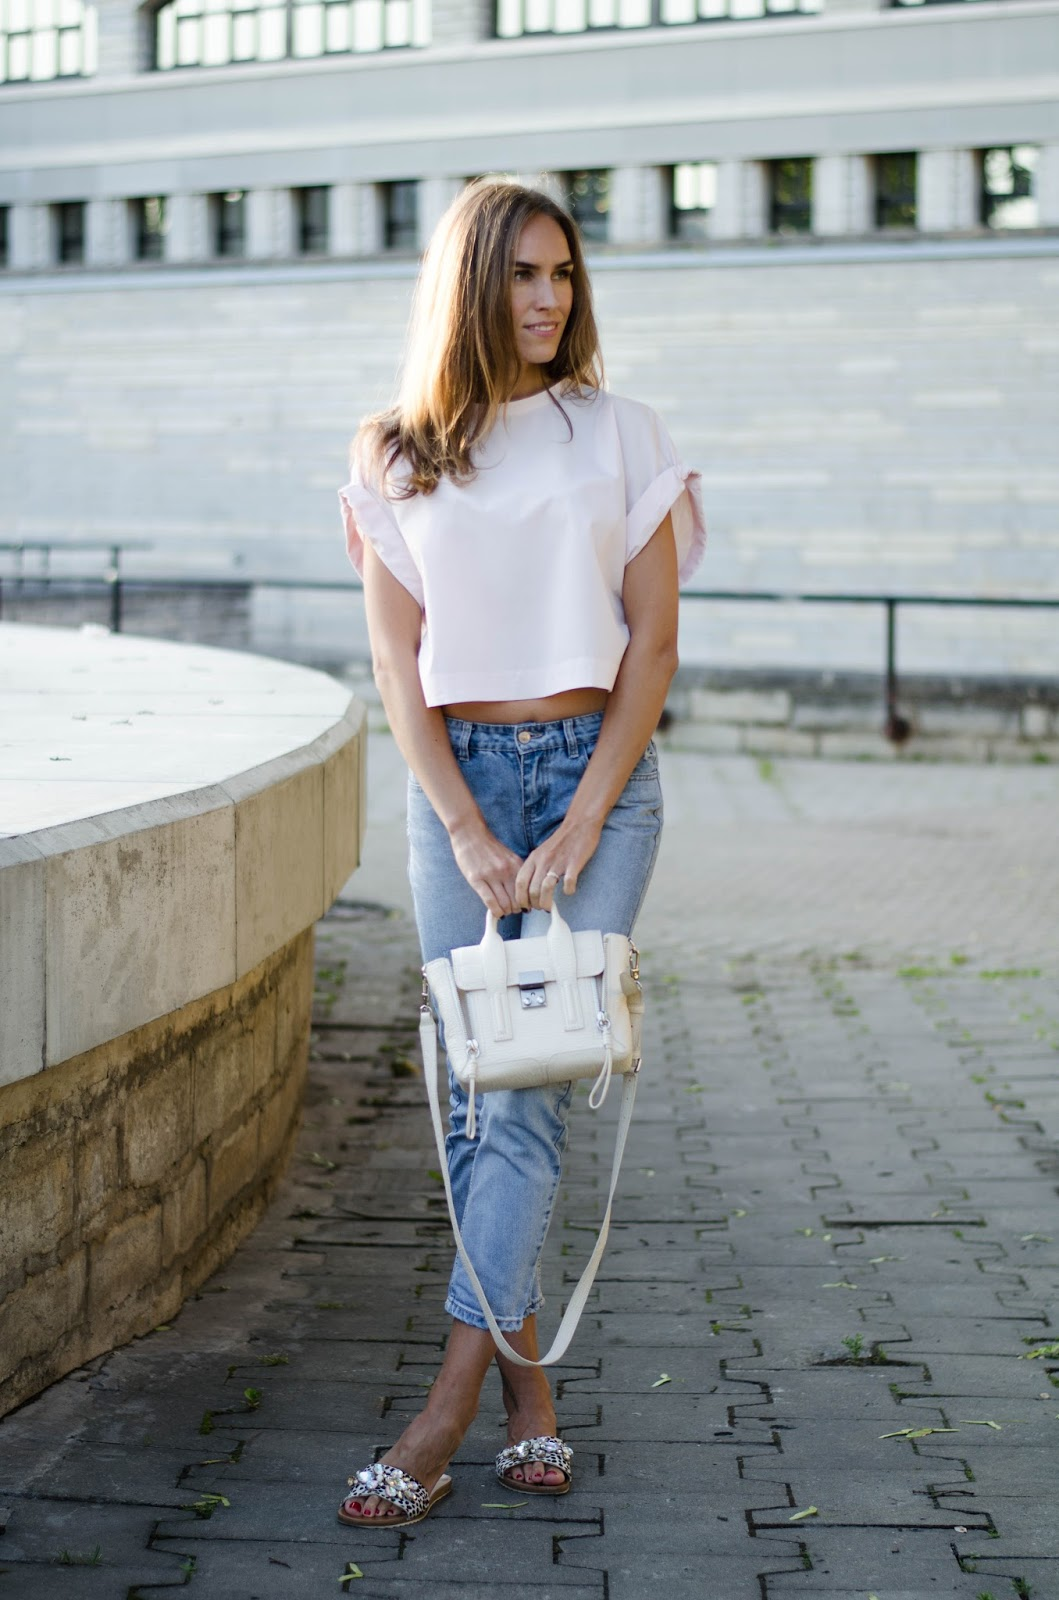 kristjaana mere pink crop top blue jeans summer casual outfit